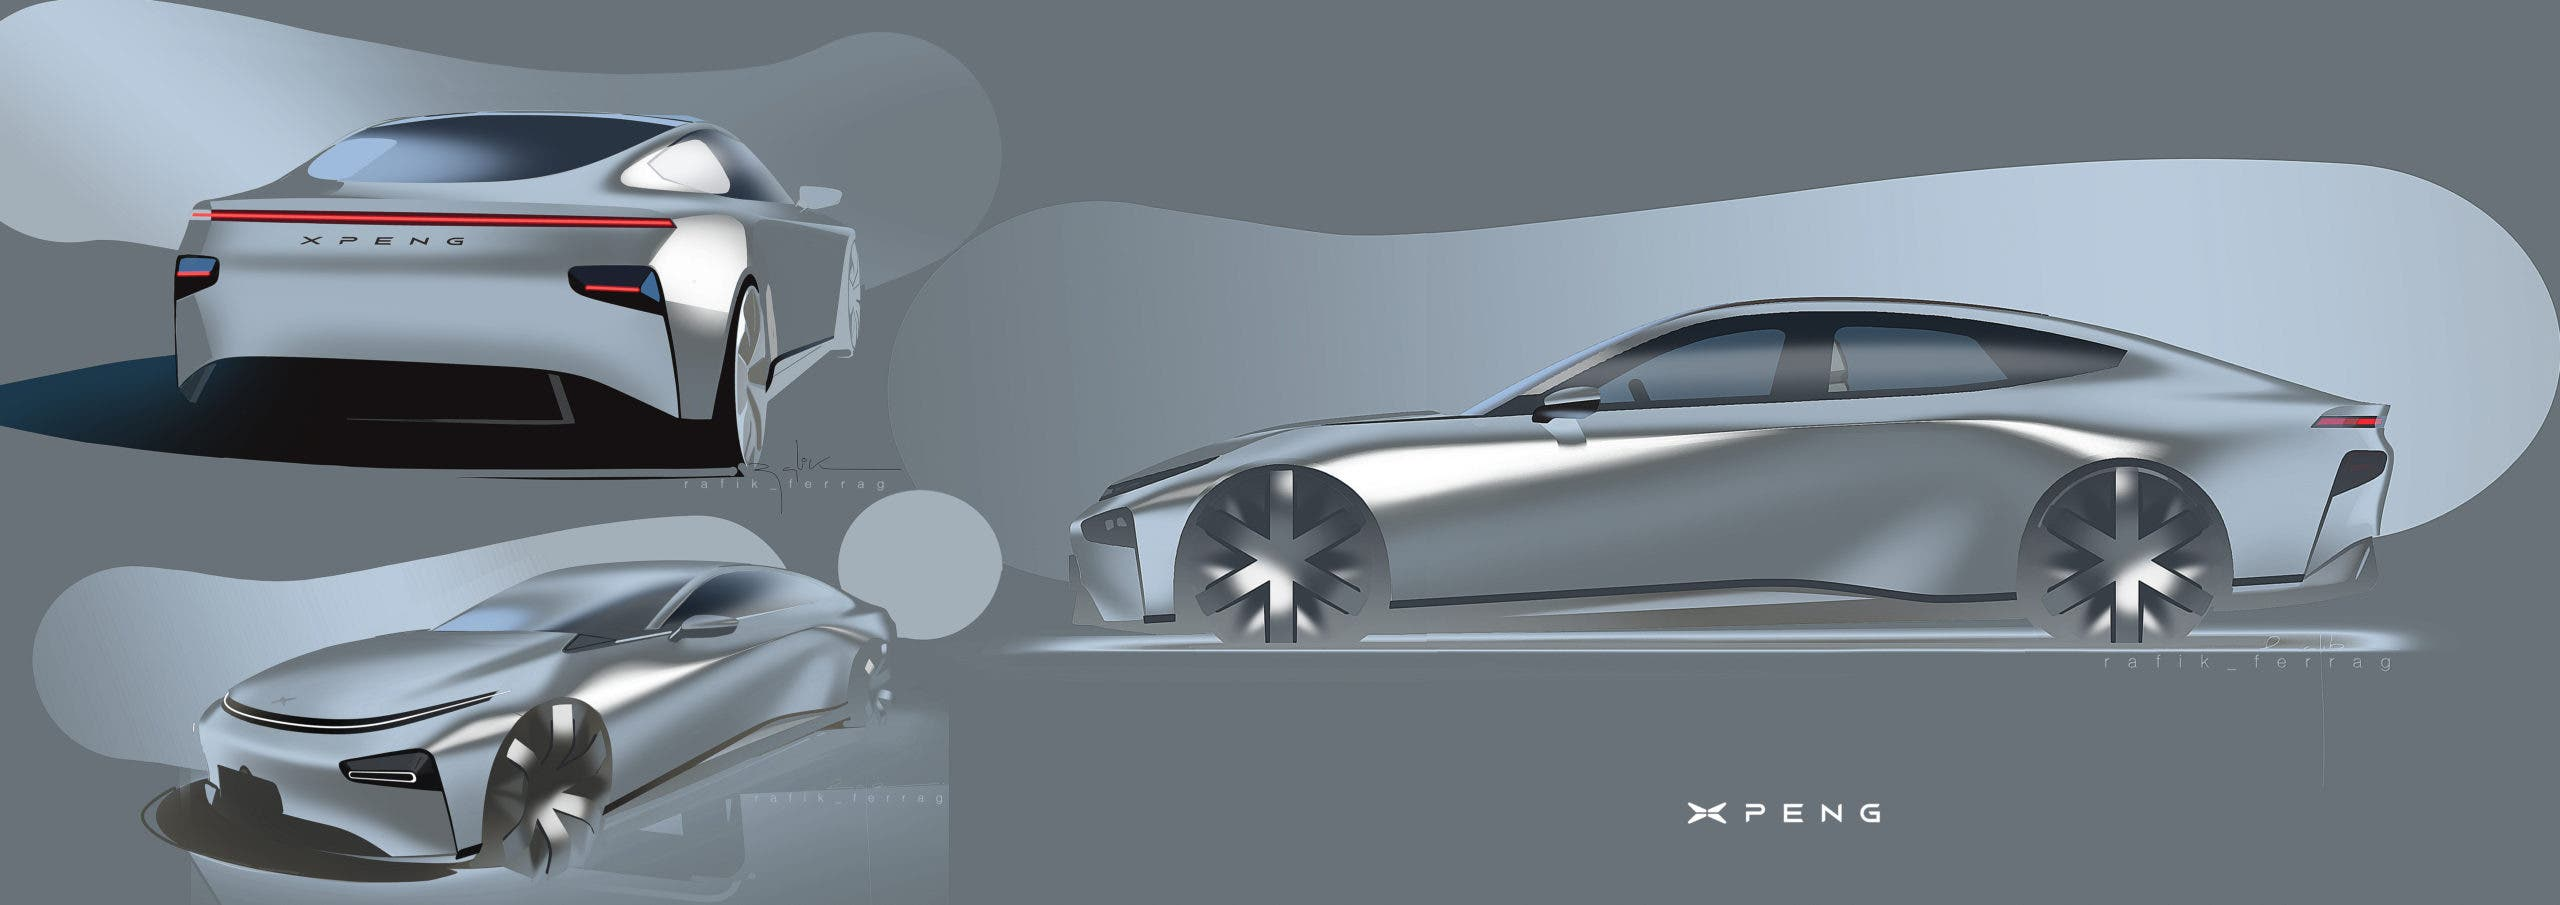 Xpeng Motors P7 Smart Coupe Sedan. Photo Xpeng Motors